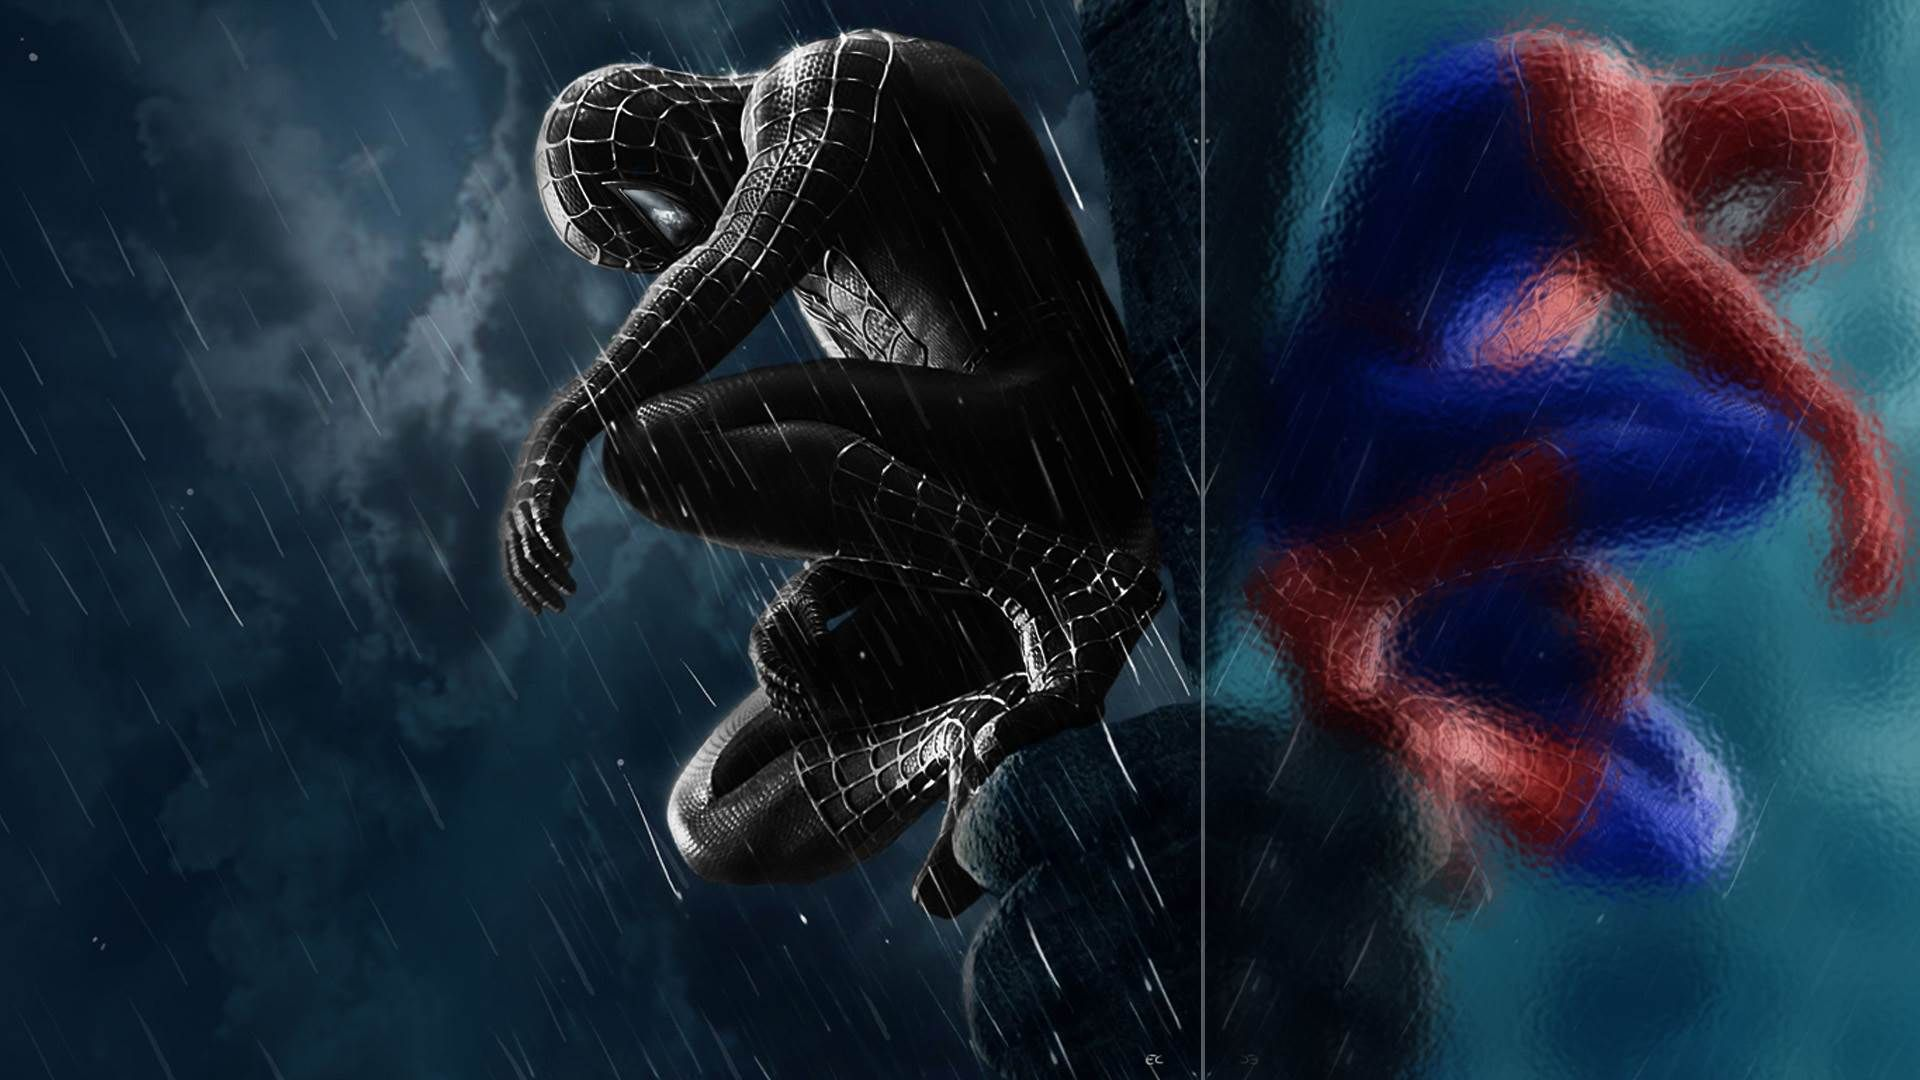 Tobey Maguire In Spider Man Hd Wallpapers 1920 1080 Spiderman Pics